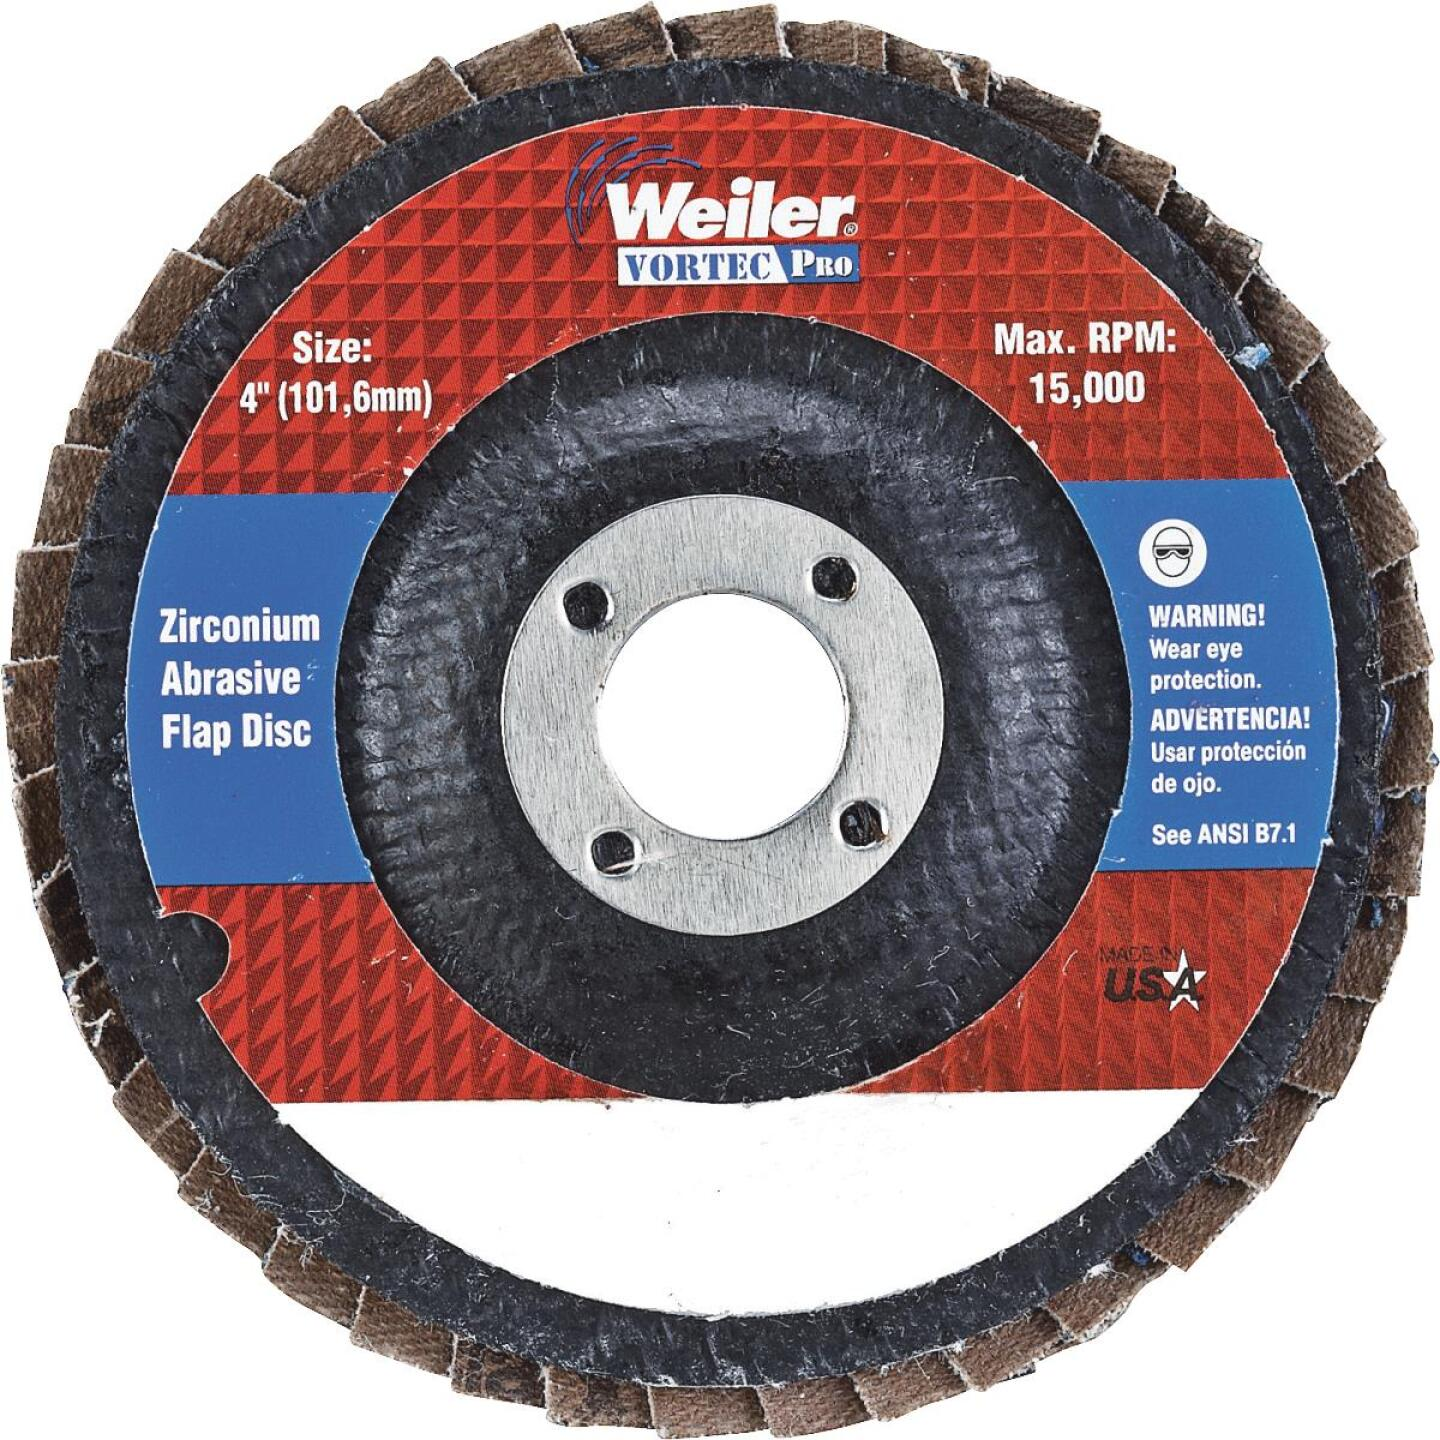 Weiler Vortec 4 In. x 5/8 In. 36-Grit Type 29 Angle Grinder Flap Disc Image 1